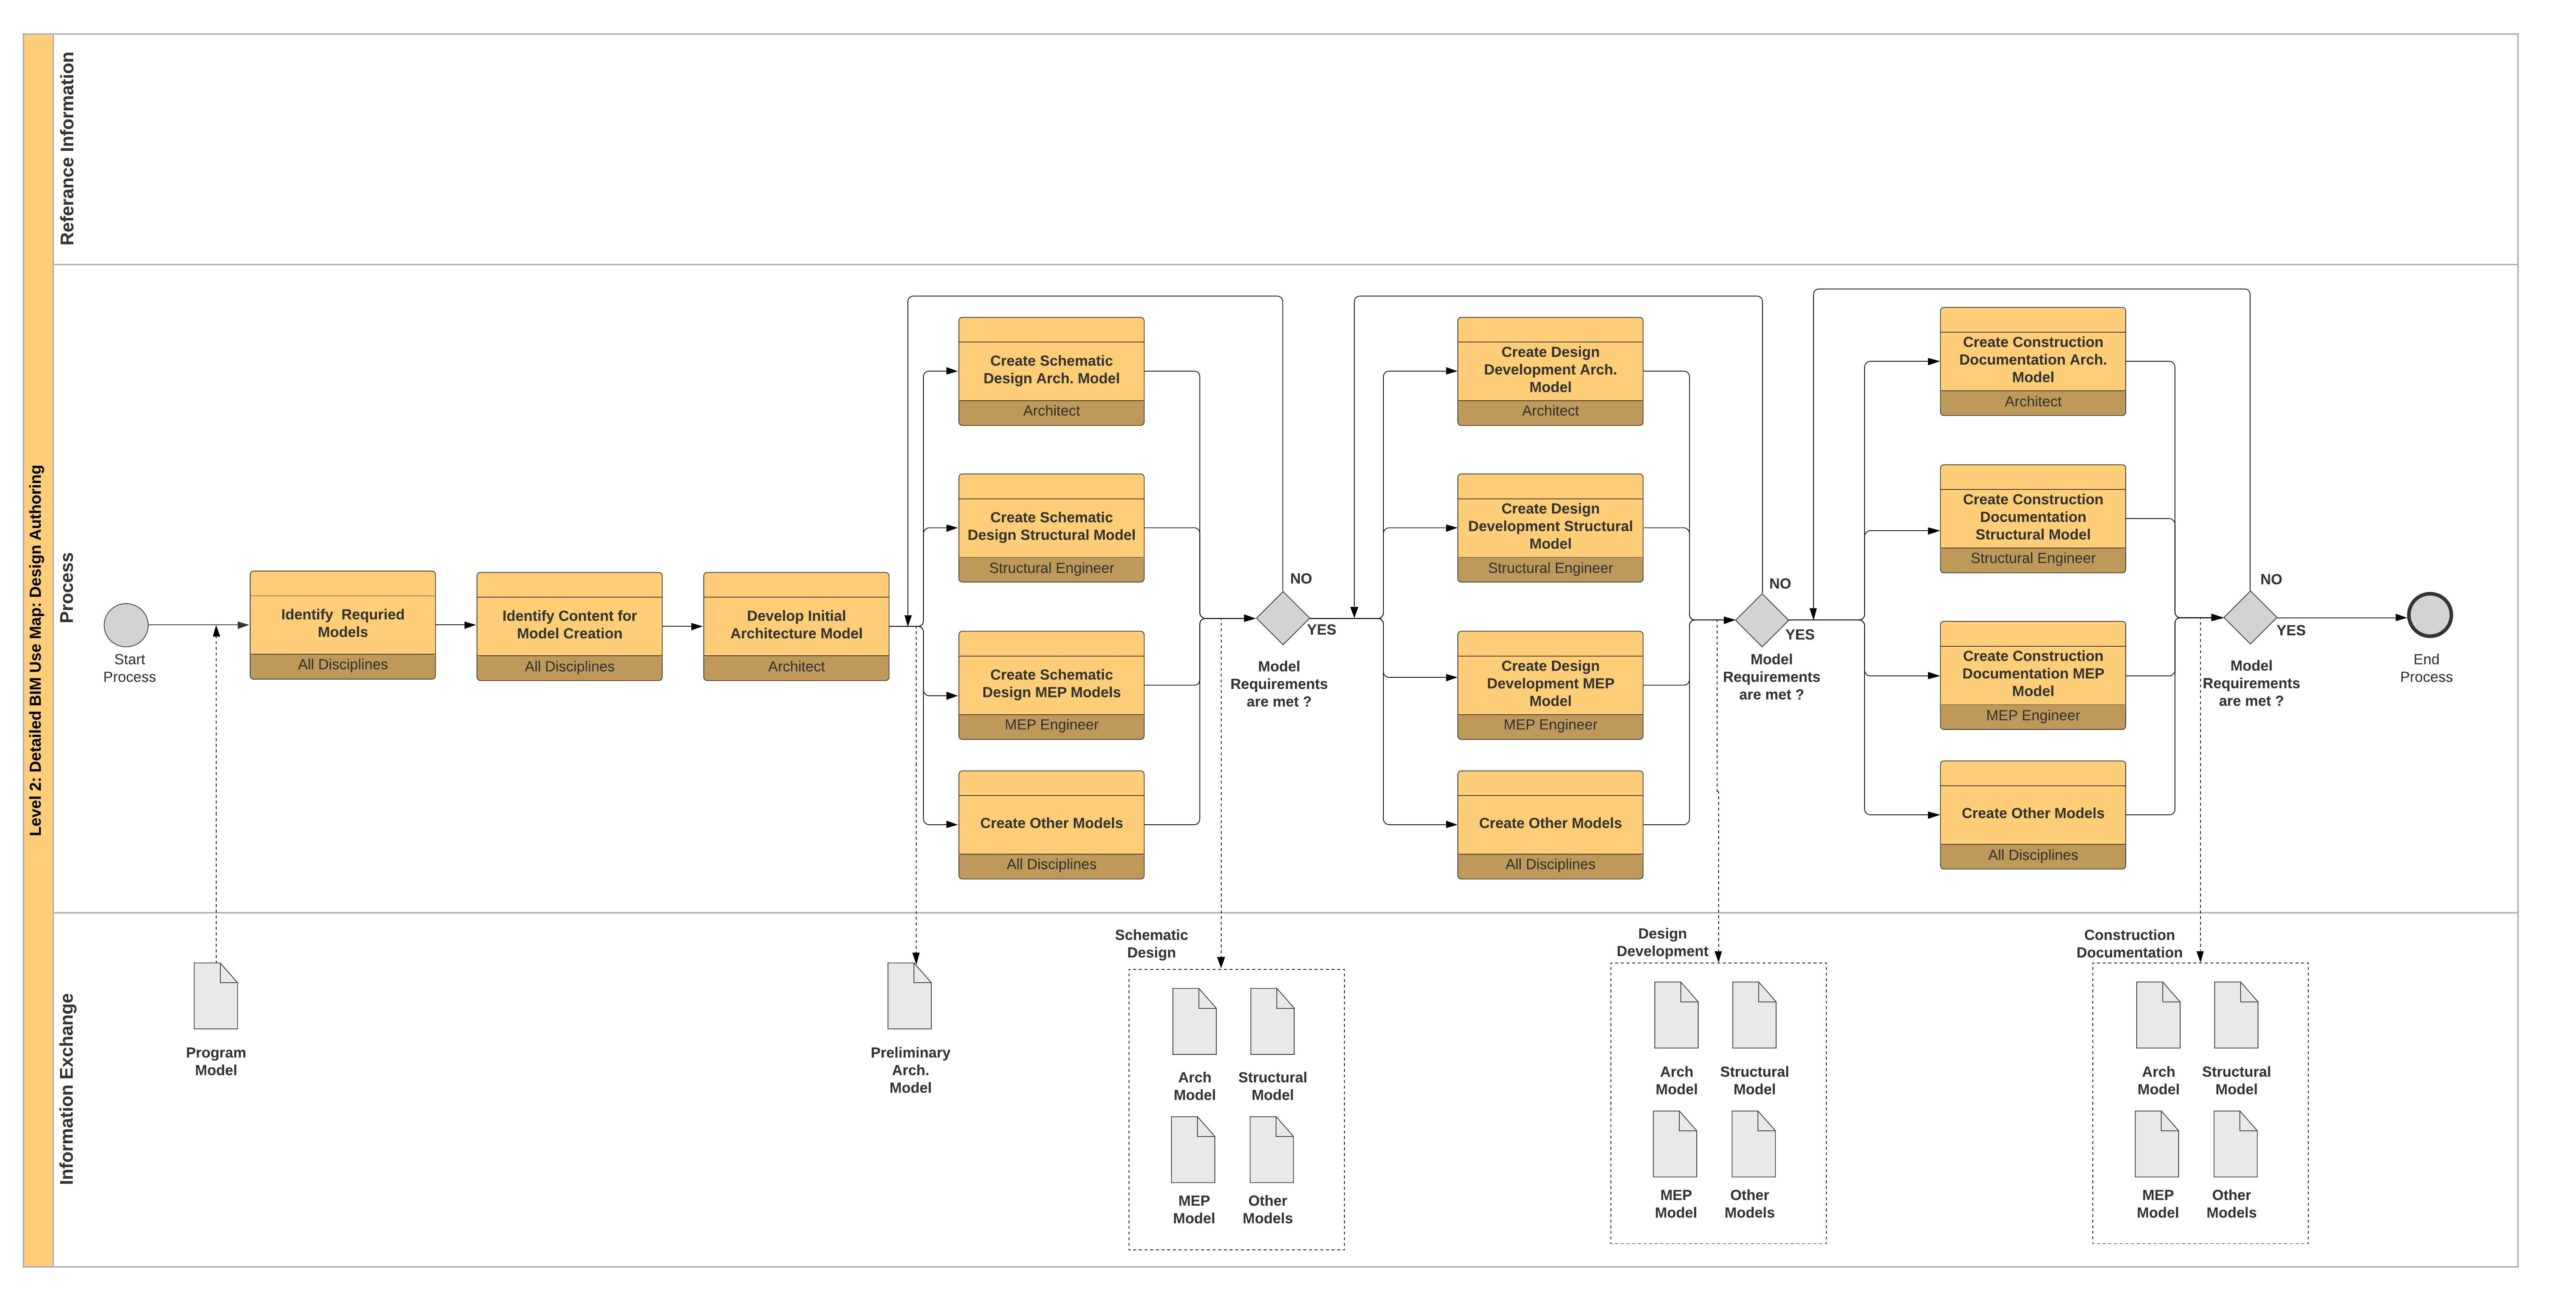 Example of Detailed BIM Use process map - Design Authoring